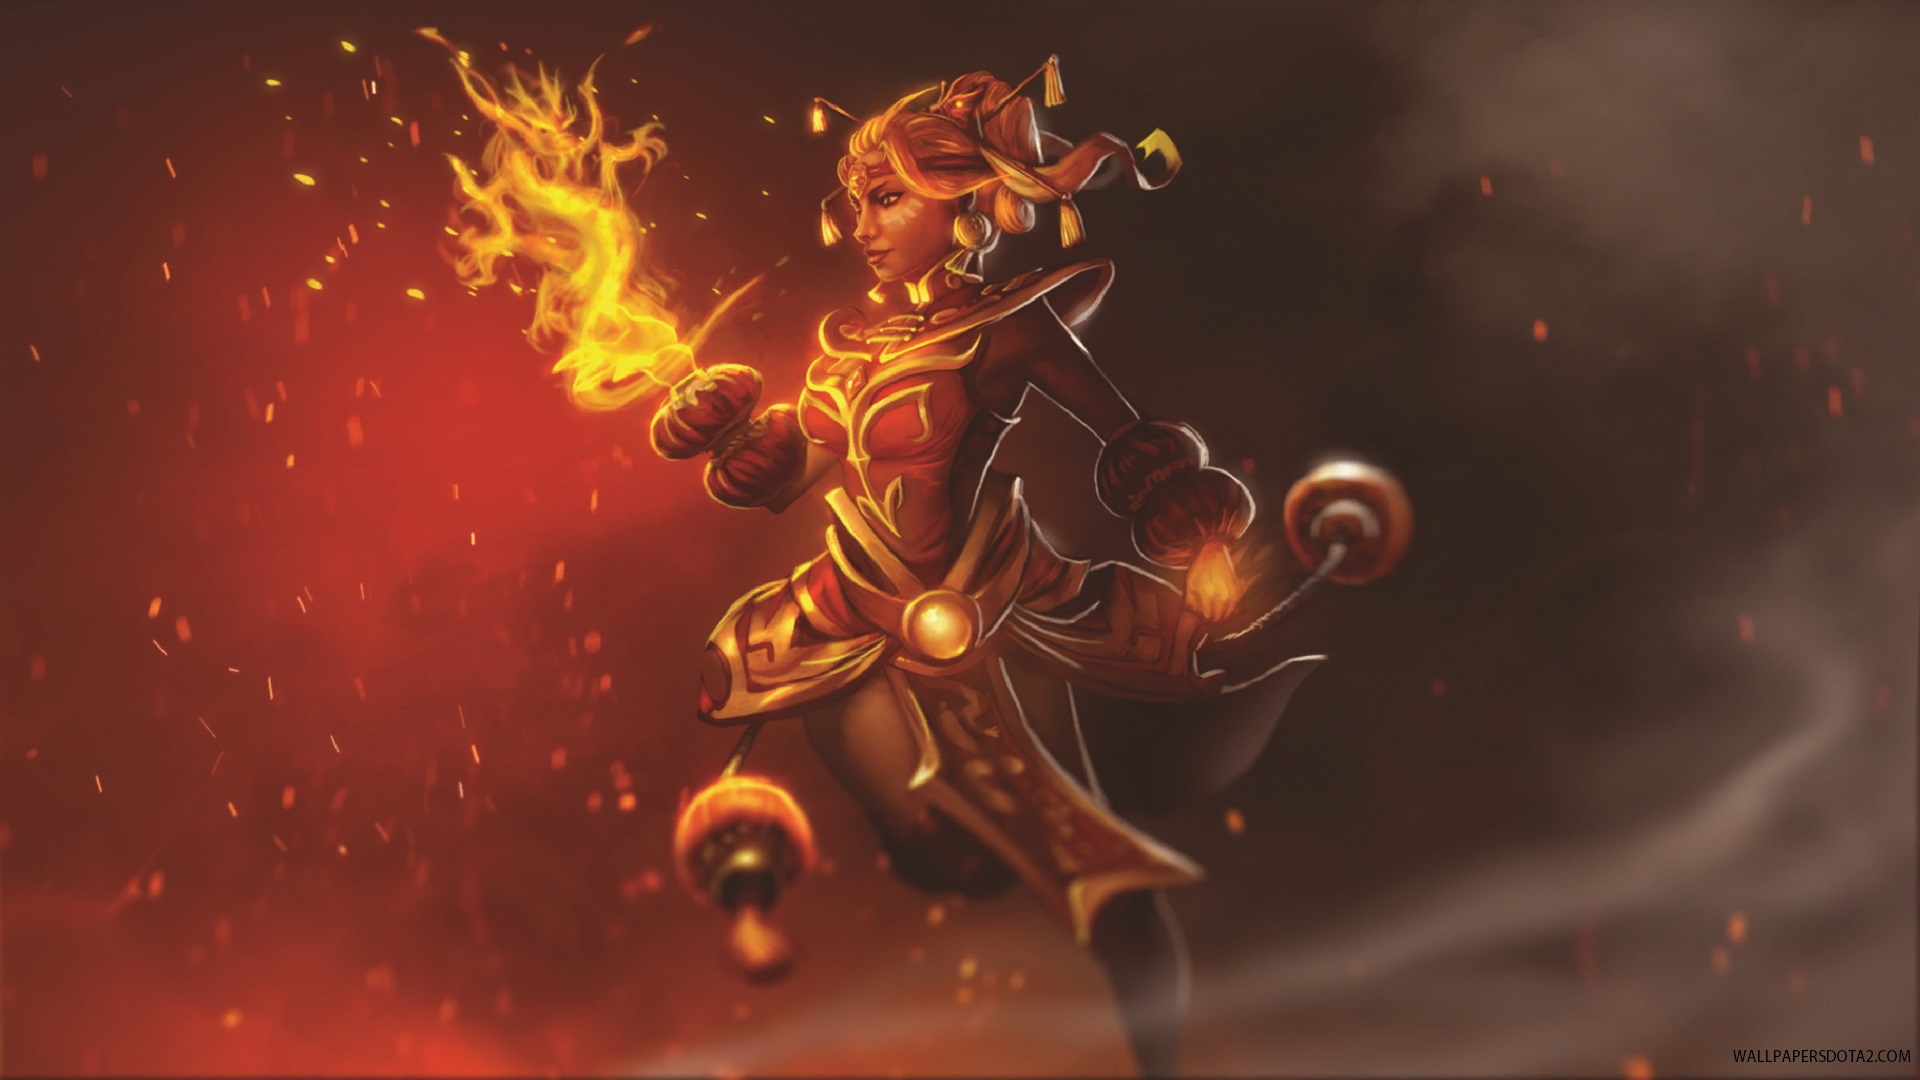 Lina Dragonfire set backgrounds for pc laptops Dota 2